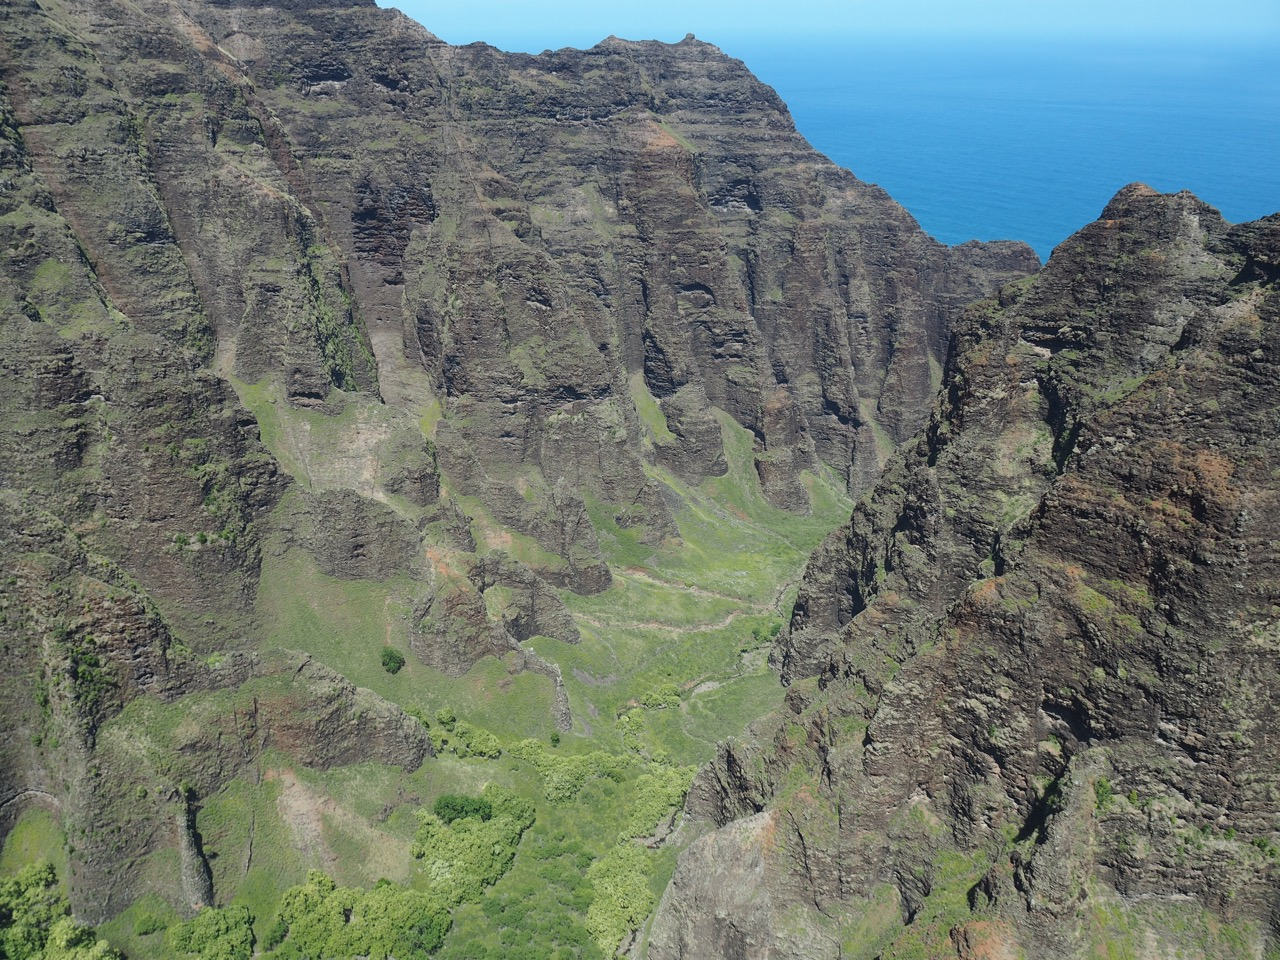 The Na Pali Coast.